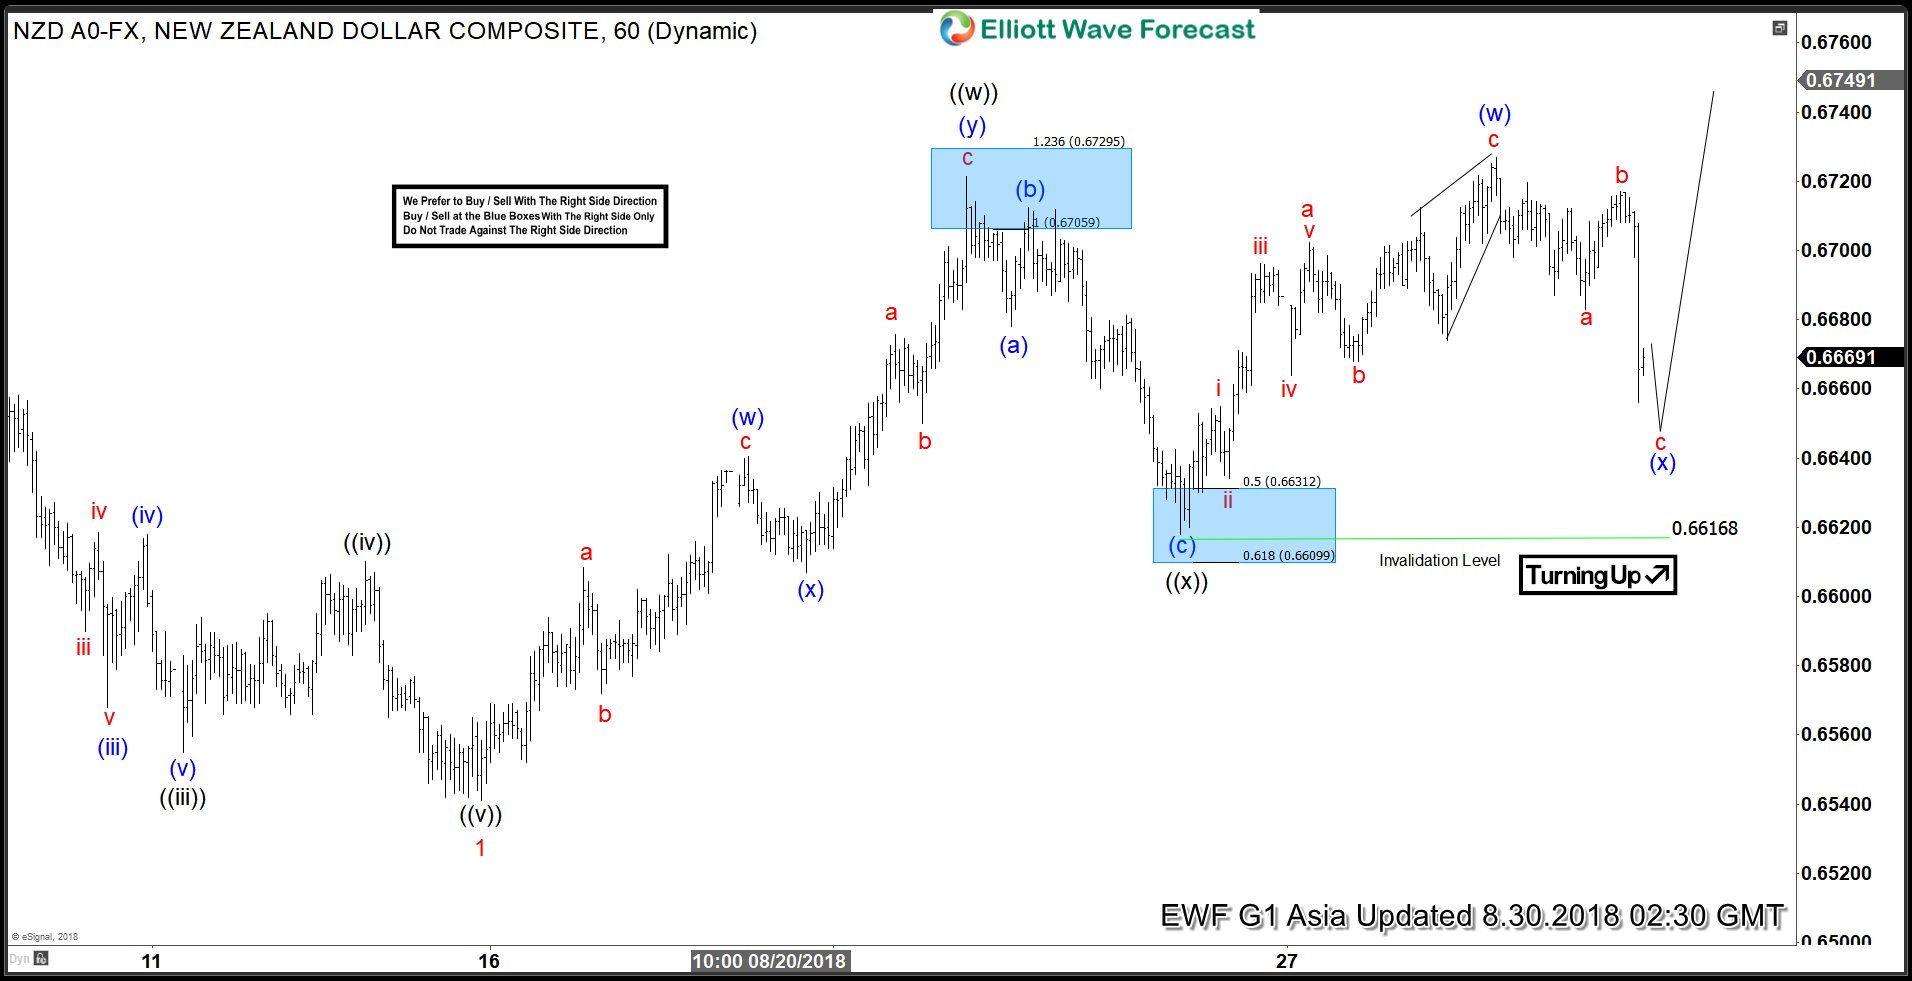 NZDUSD Elliott Wave Analysis: Double Correction Taking Place